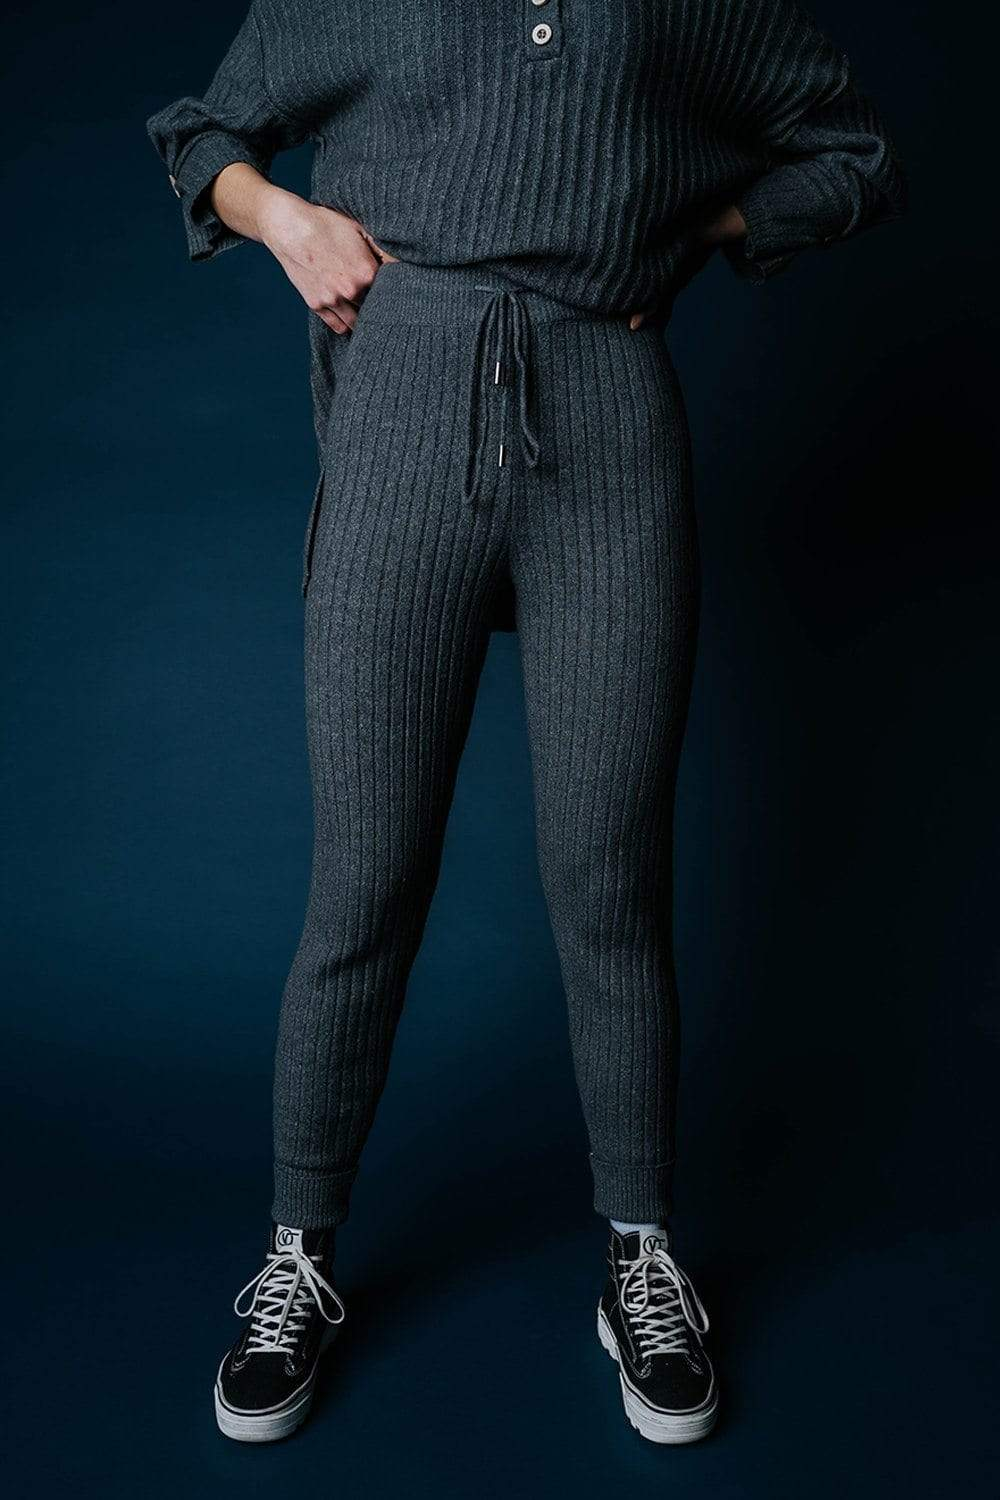 Clad and Cloth, Free People Around the Clock Jogger in Charcoal, Free People, Bottom.